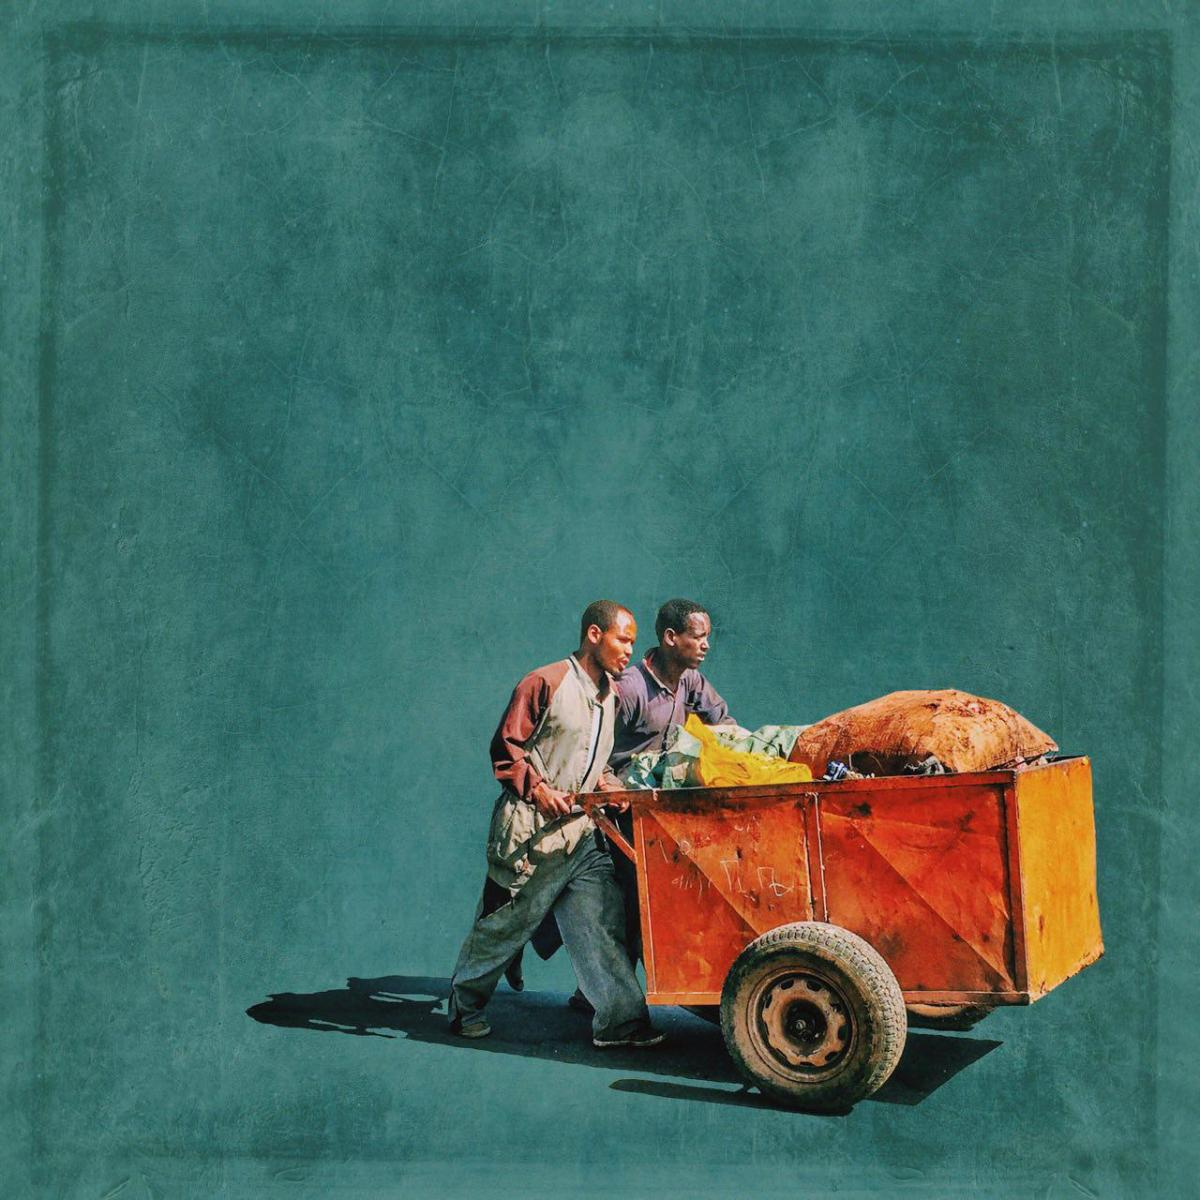 This image of two street workers in Addis Ababa was created and designed on Berta's mobile phone.